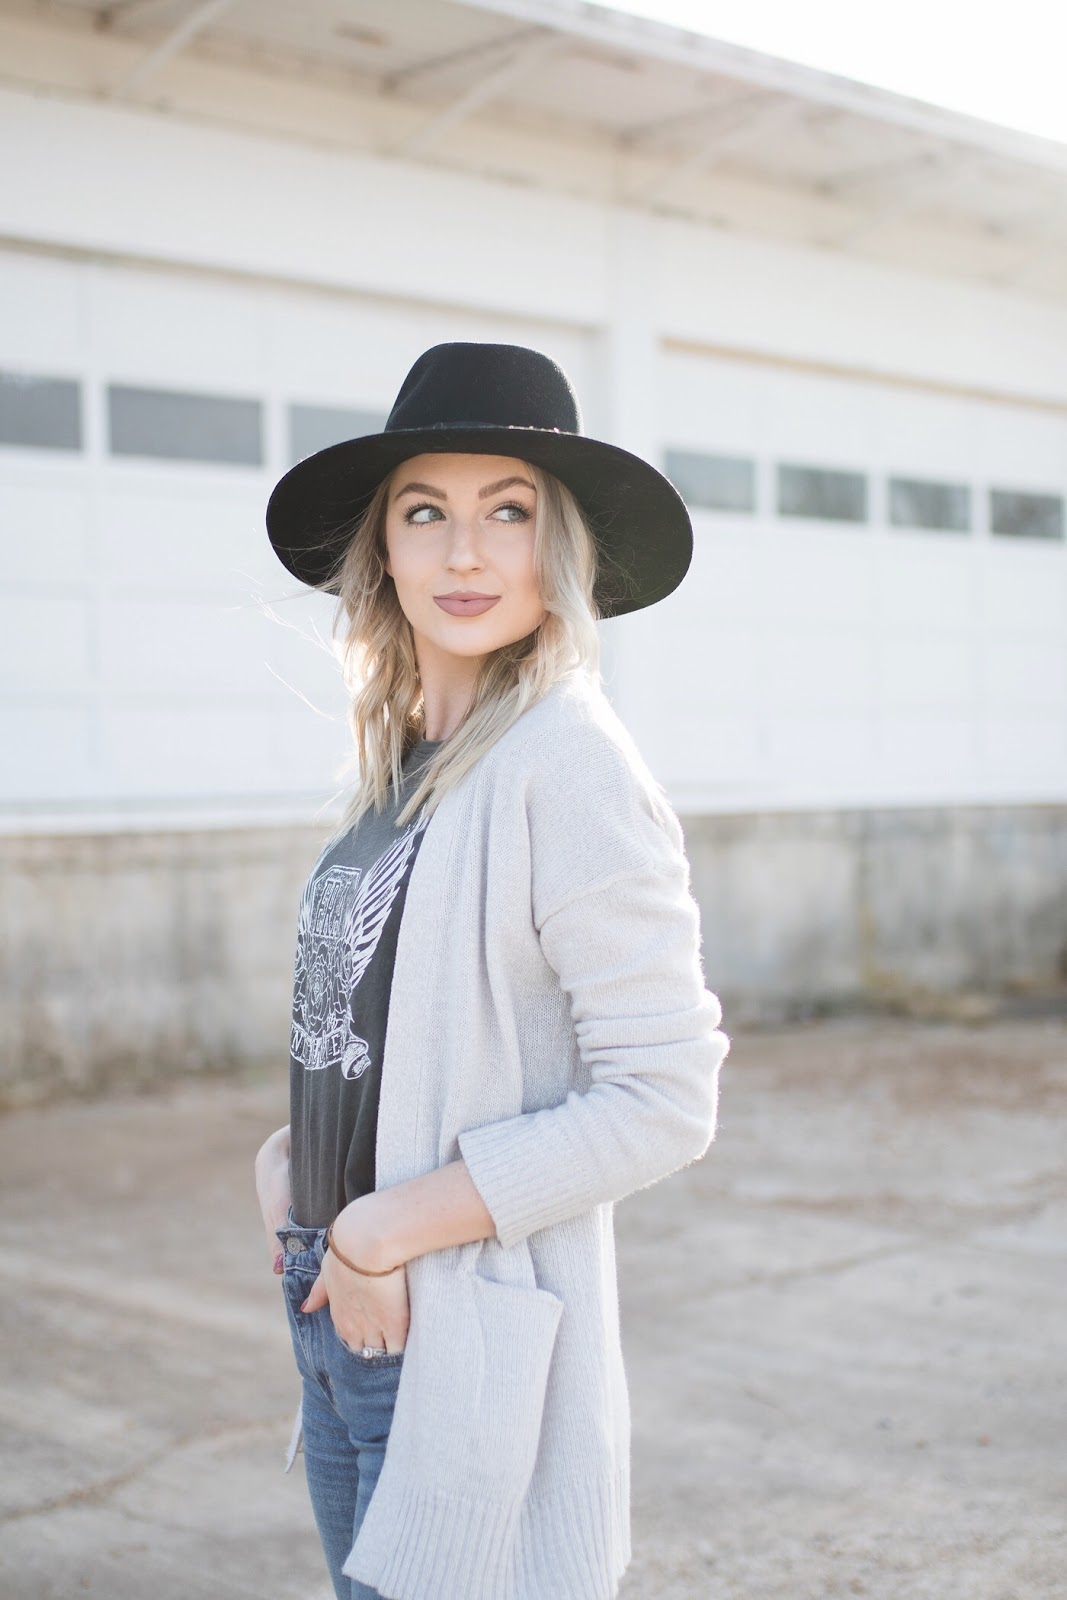 gray cardigan with a graphic tee, jeans, and hat